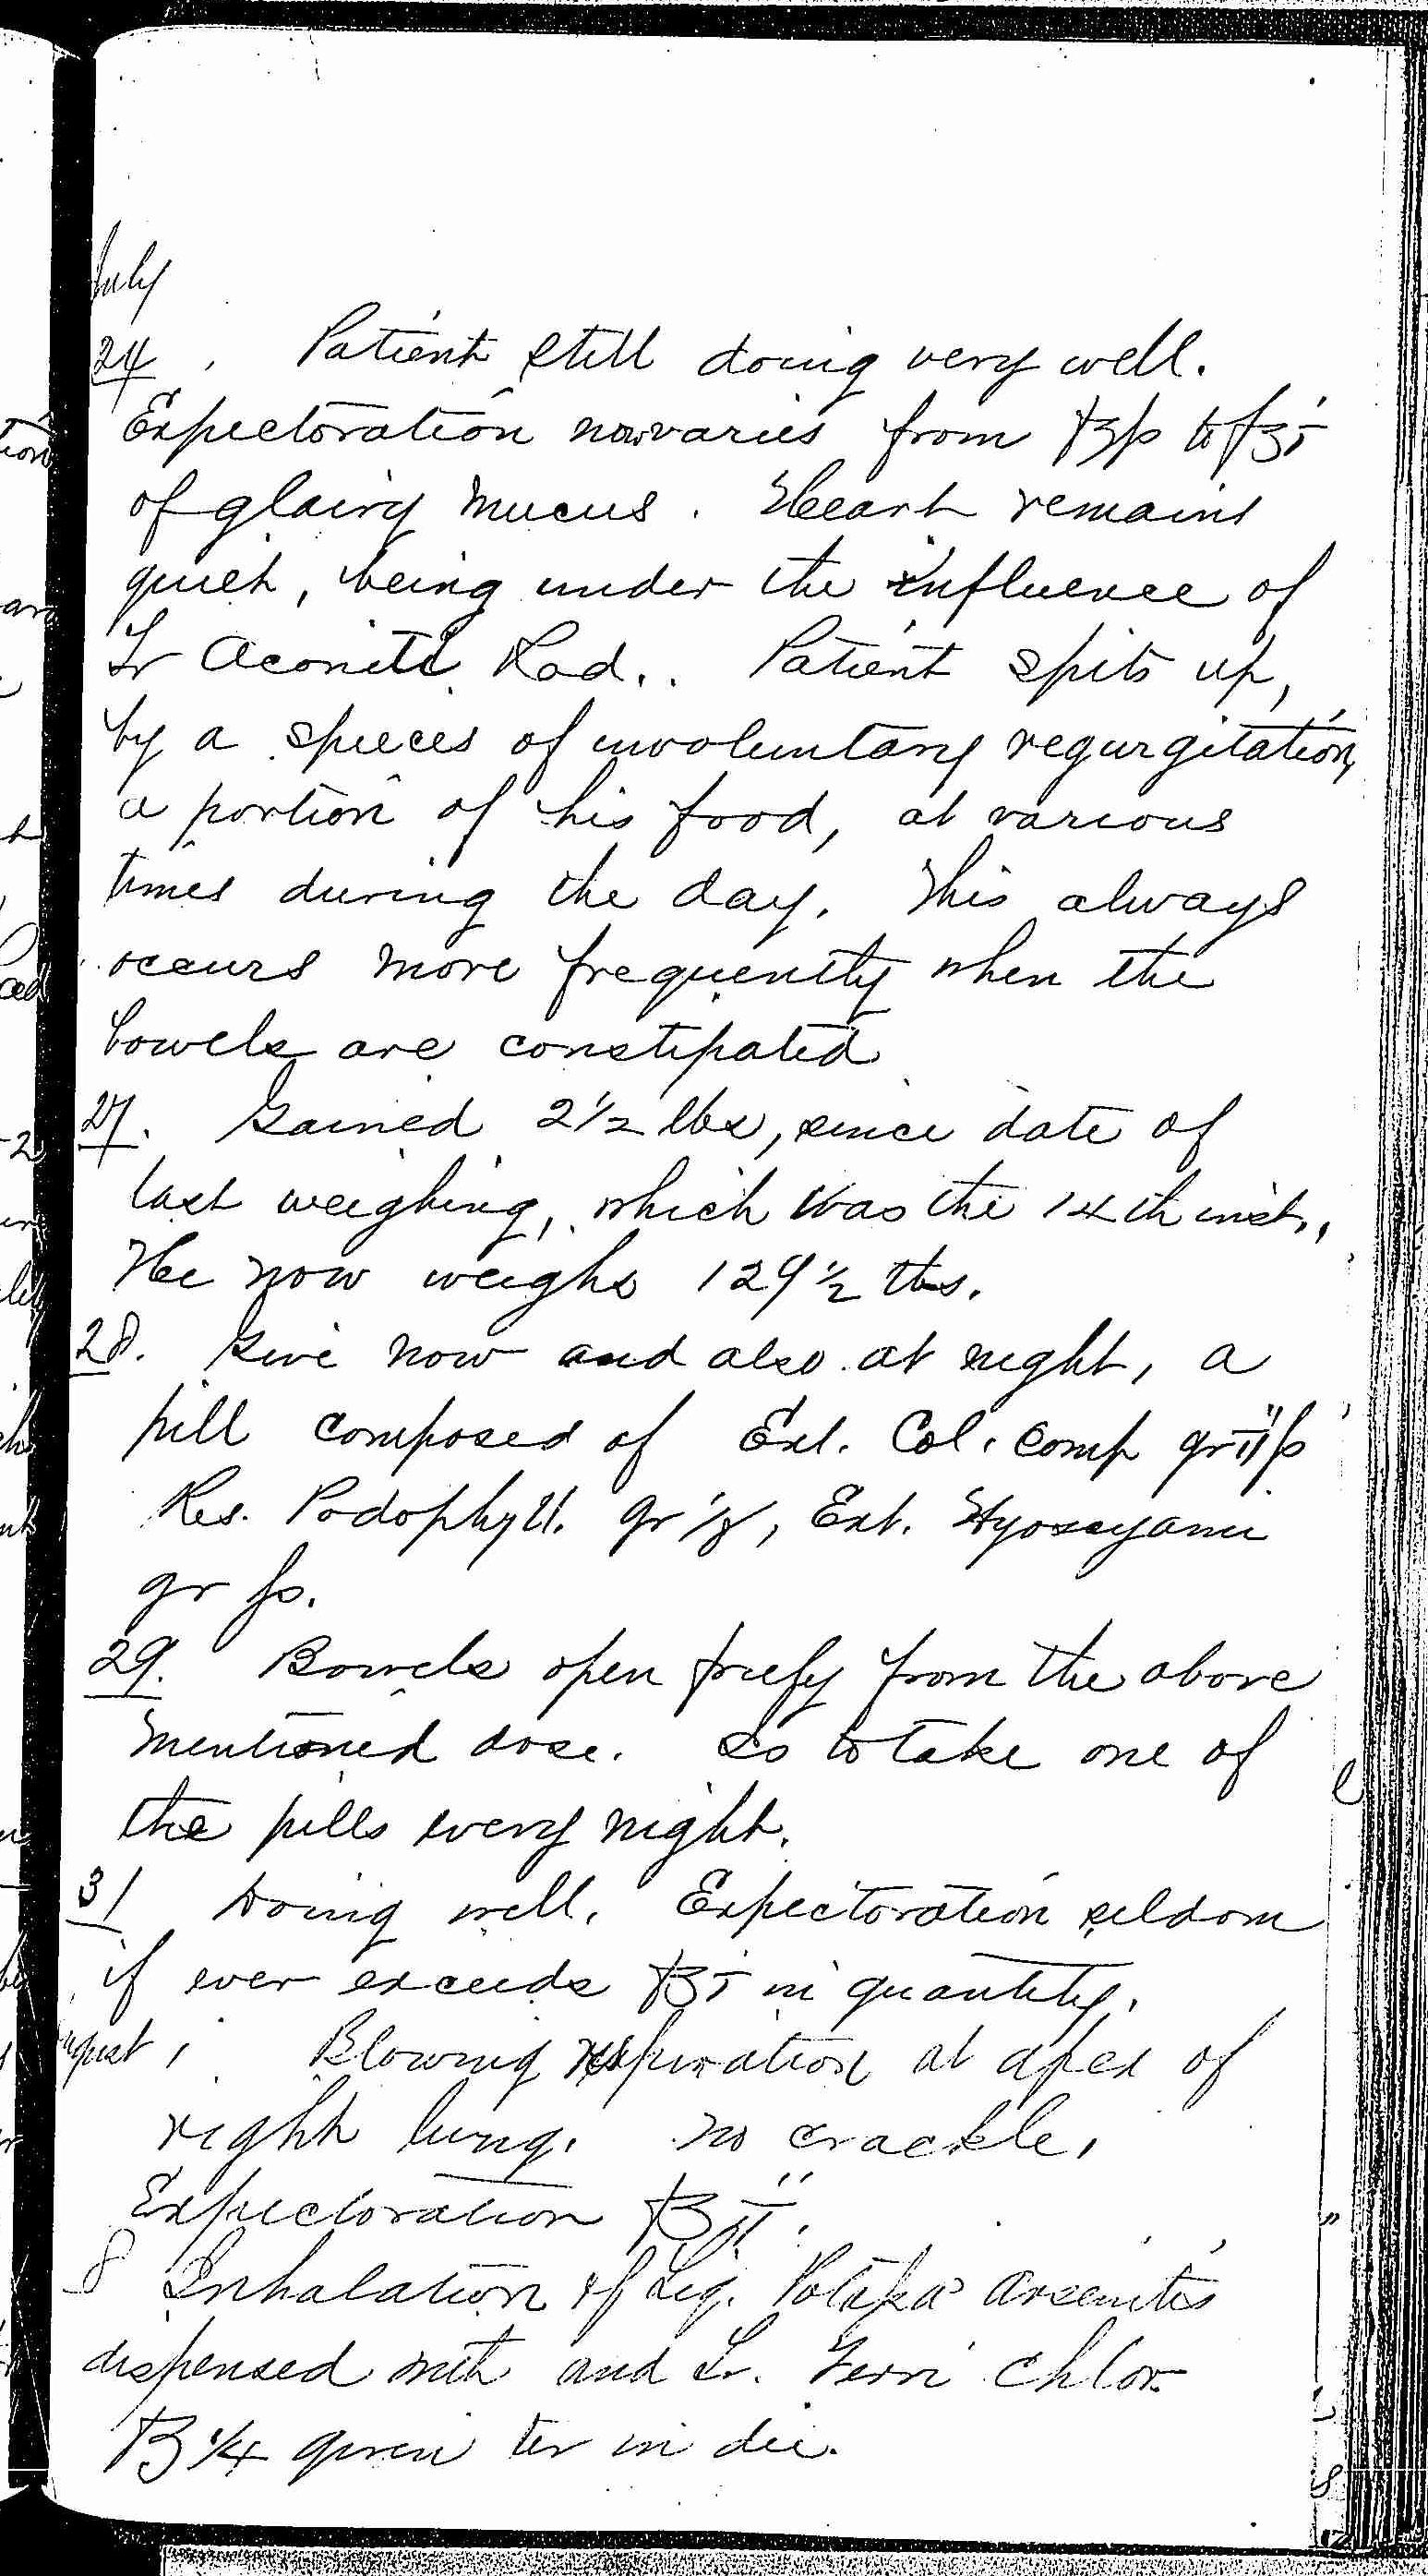 Entry for Francis Brannigan (page 5 of 6) in the log Hospital Tickets and Case Papers - Naval Hospital - Washington, D.C. - 1868-69